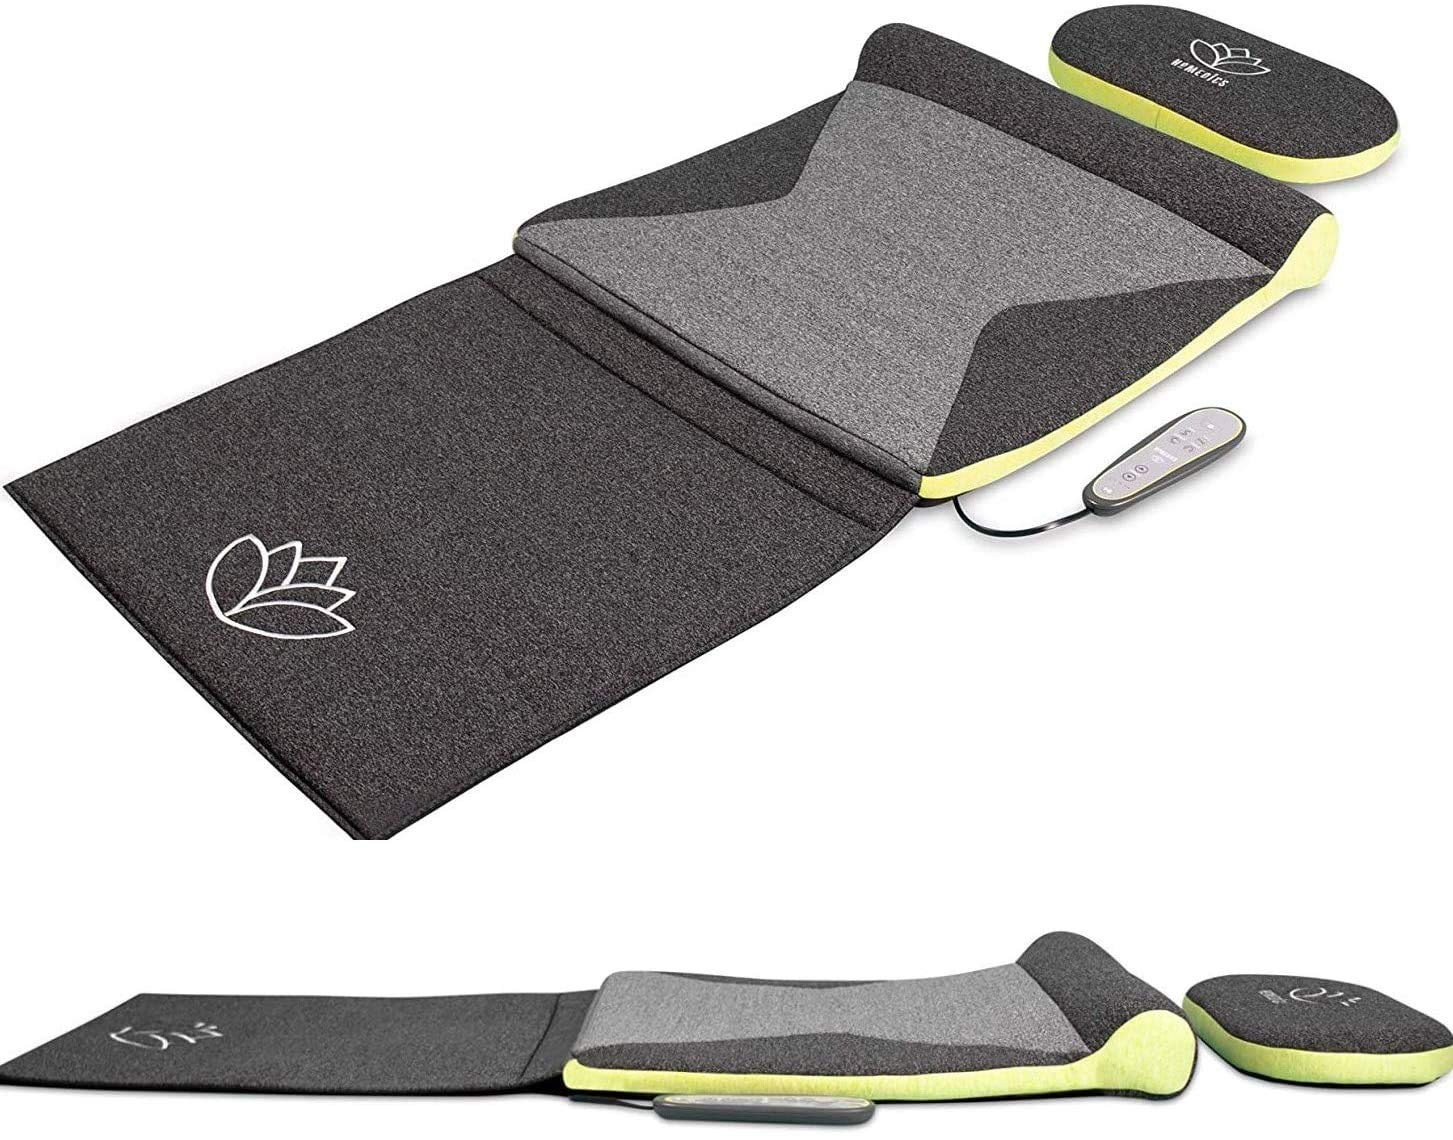 HoMedics Stretch Mat XS - Inspired by Yoga, Remote Control Adjustable Intensity, at Home Pre-Programmed Yoga/Stretch Mat for Back, Shoulder, Hip Support, Foldable Mat with Support Pillow - Grey